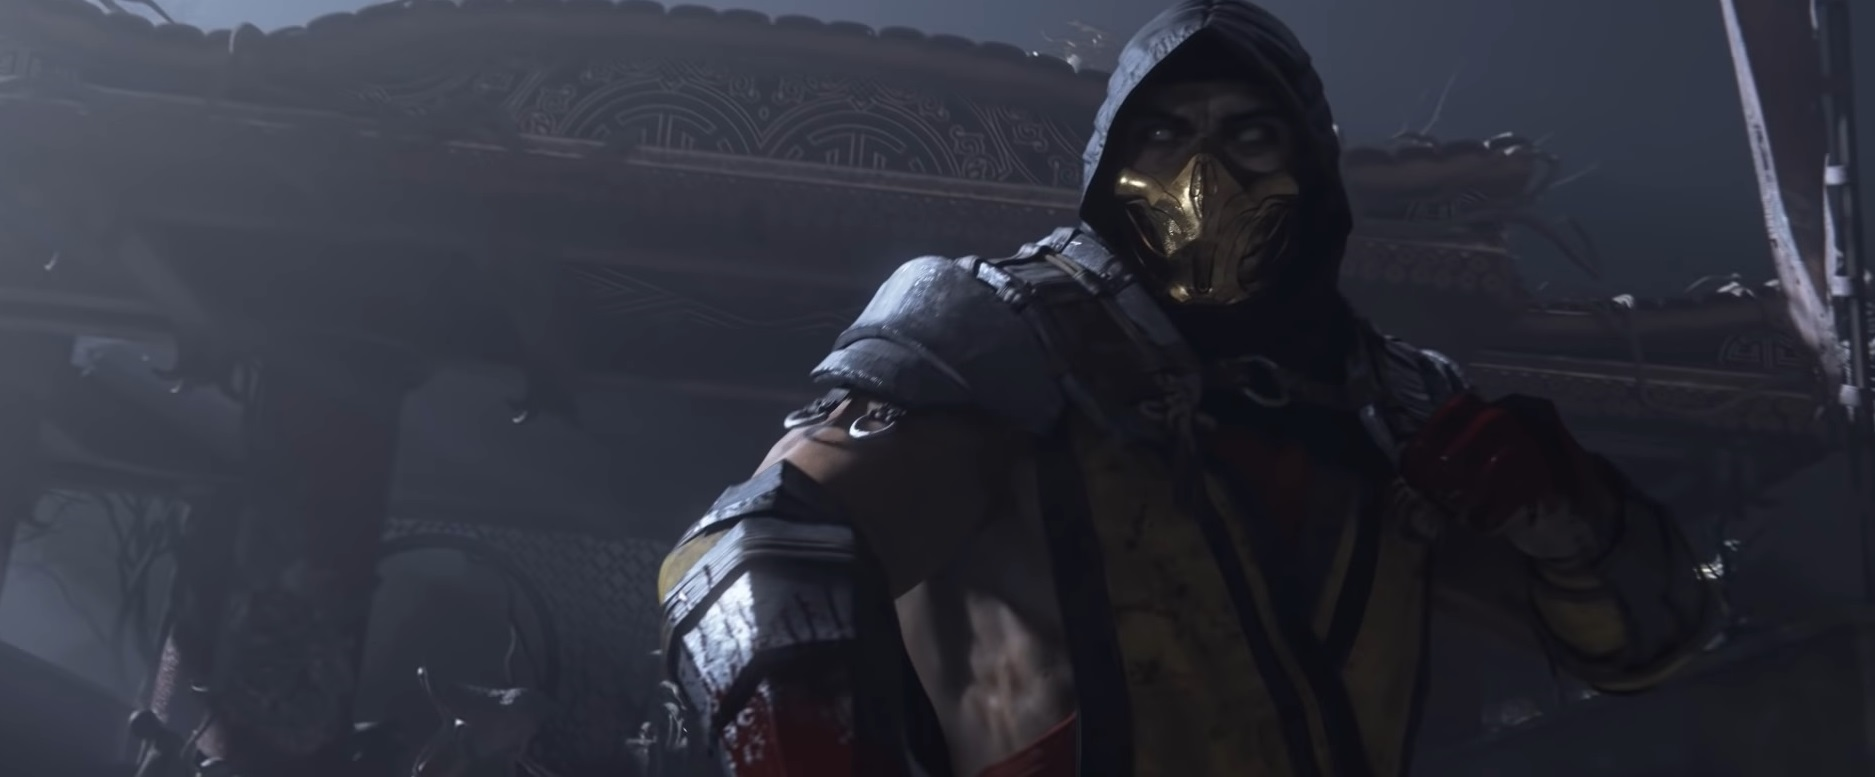 Pictures of Mortal Kombat 11's achievement list may have